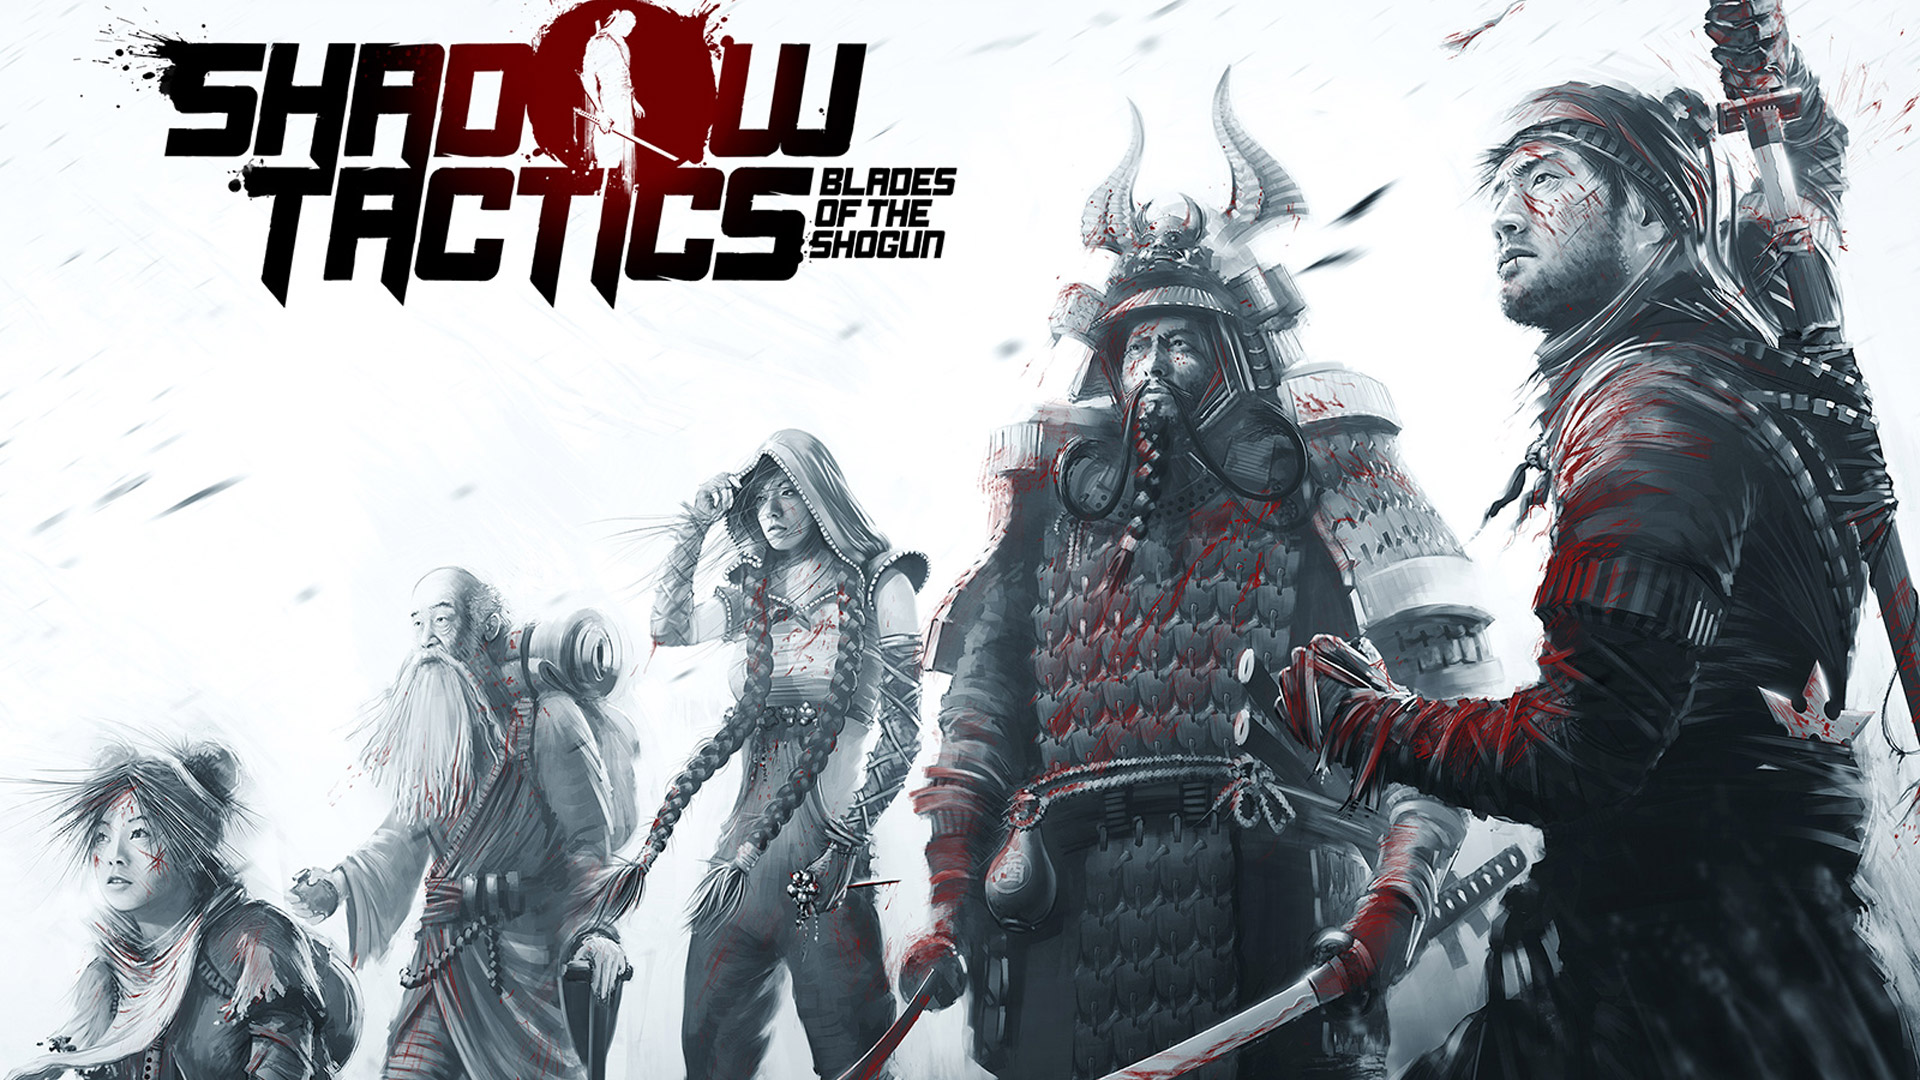 Shadow Tactics: Blades of the Shogun Wallpaper in 1920x1080